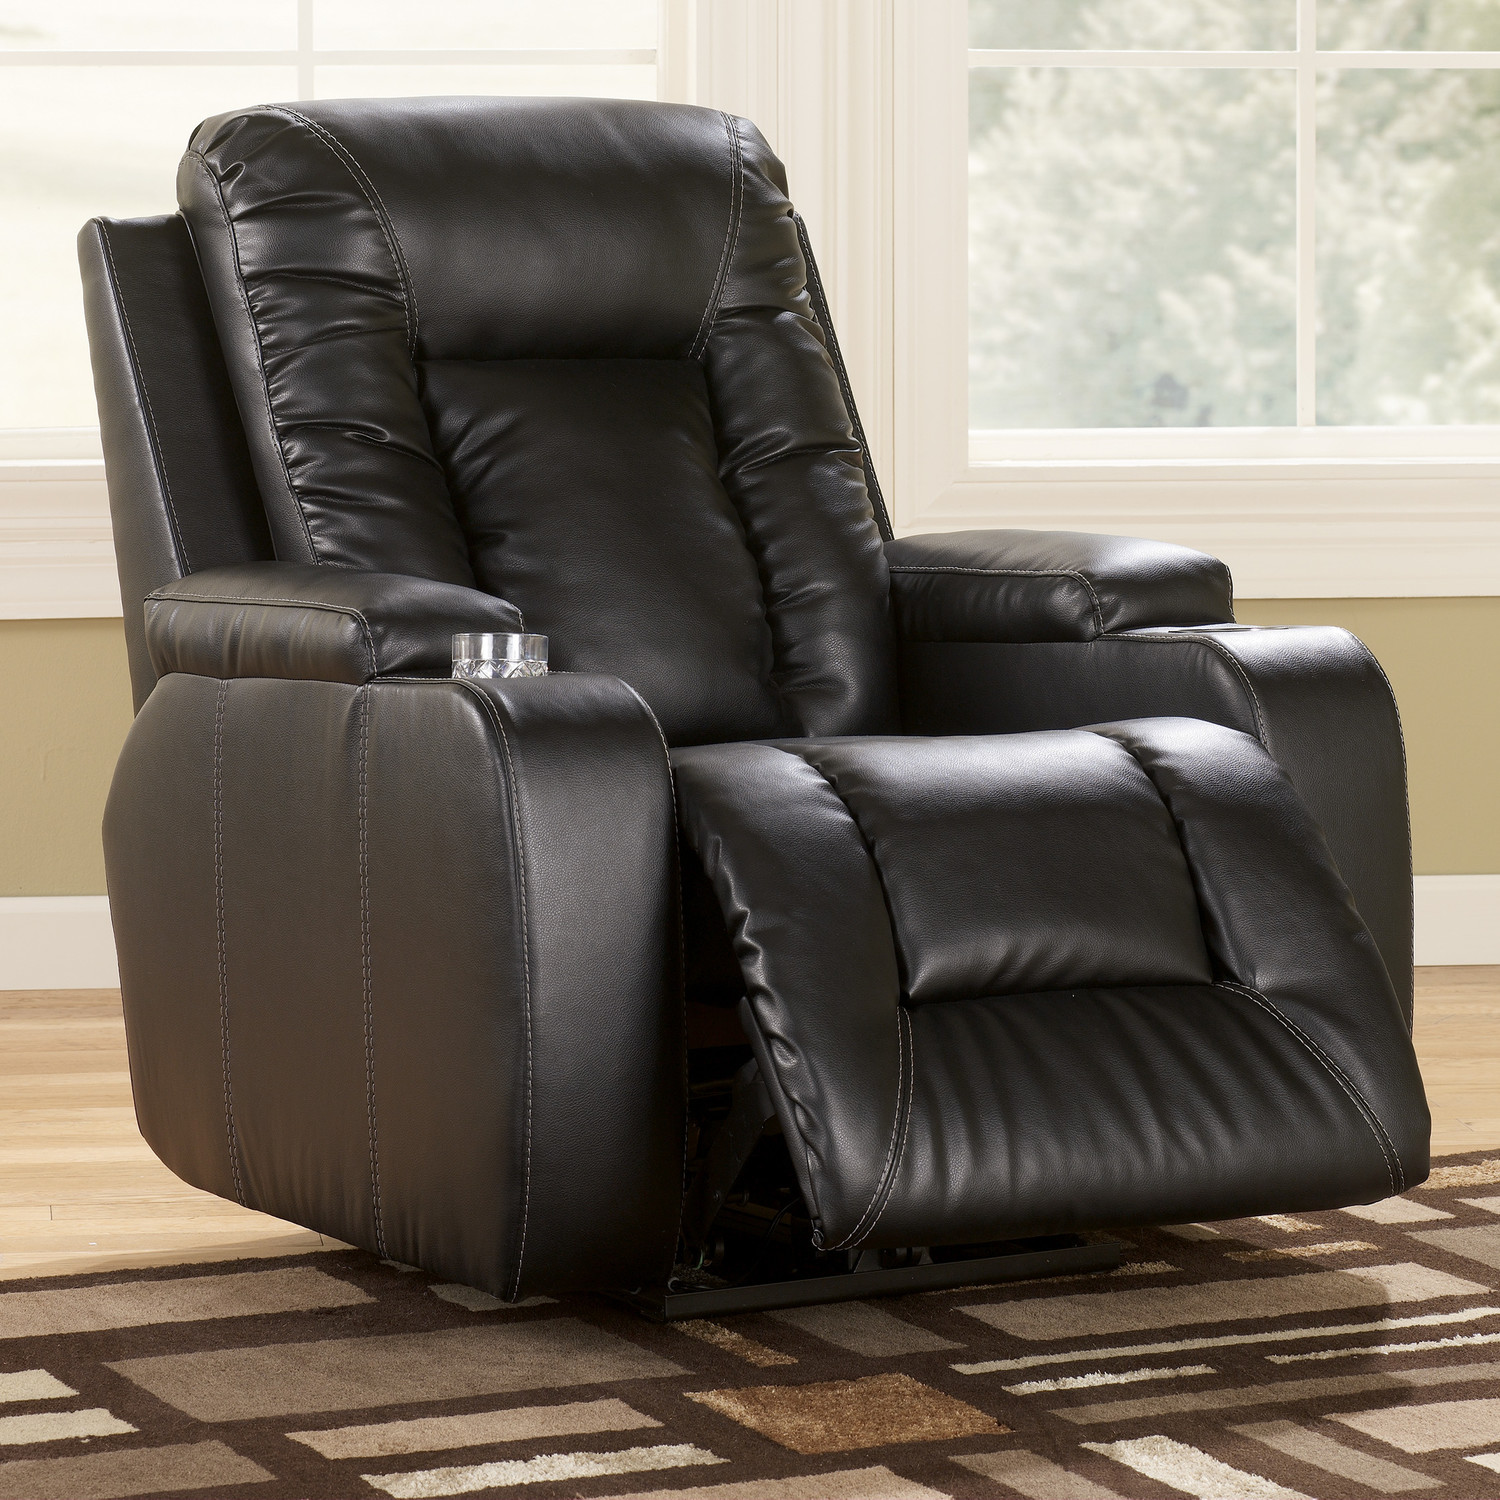 Oversized Recliner Chair Product Selections